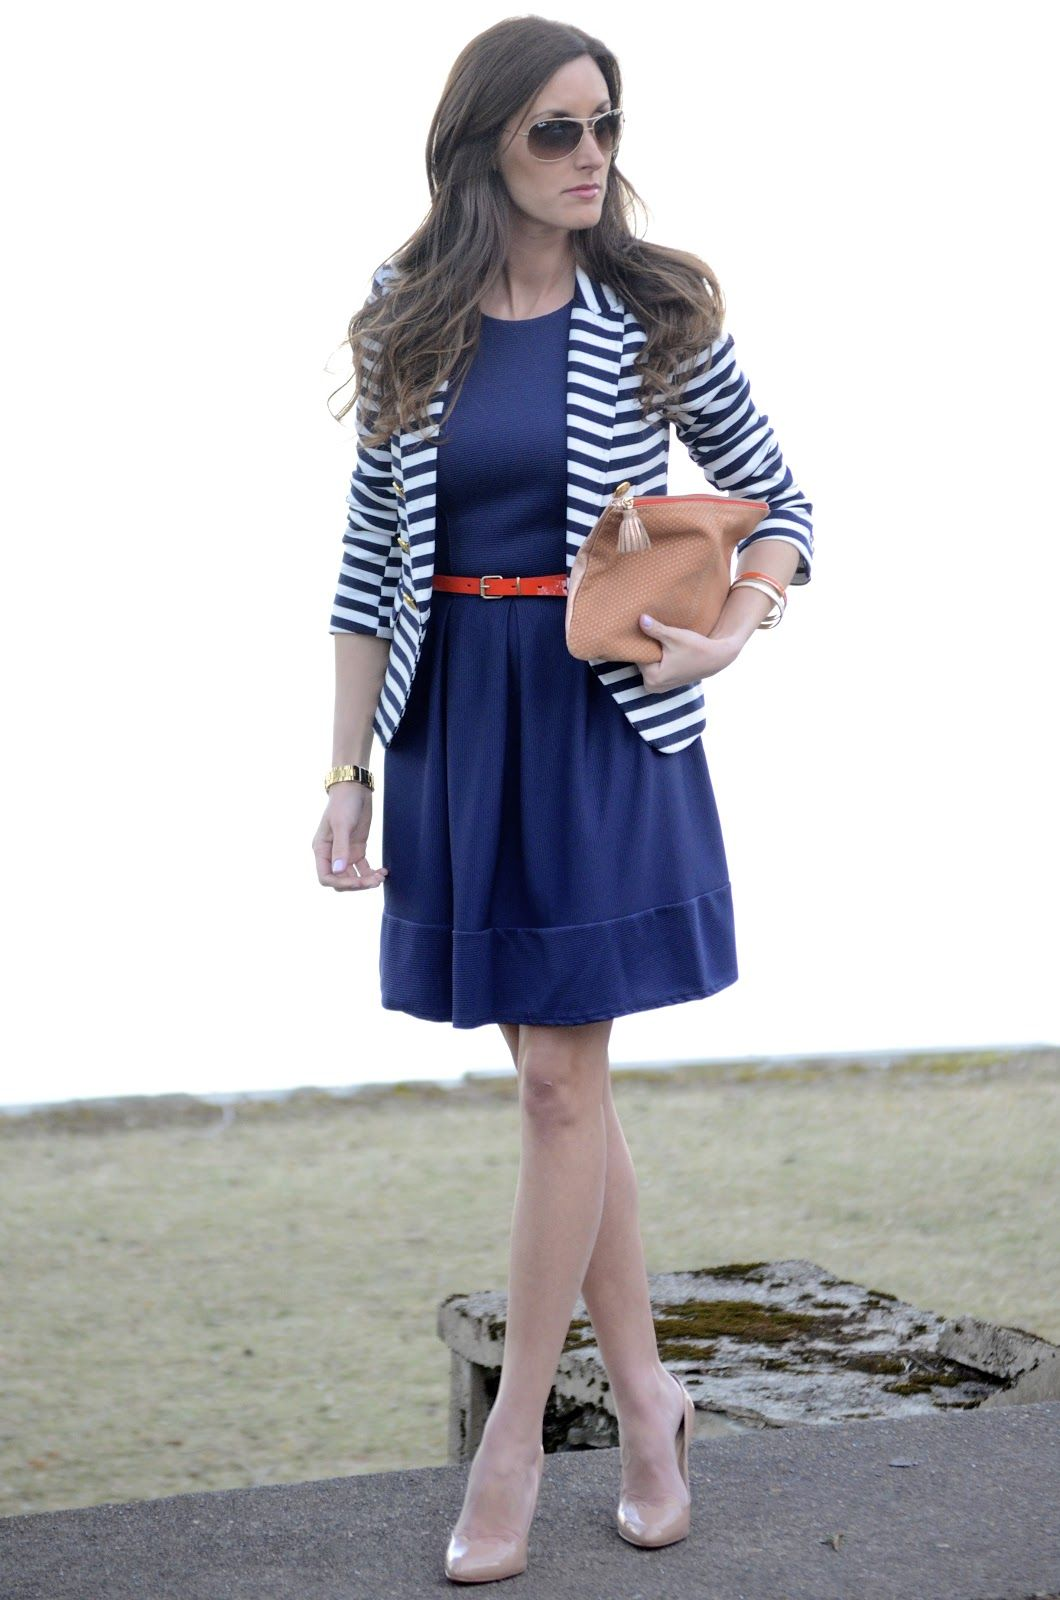 bddc87557904f Striped blazer over blue dress with belt. I have a black and white jacket  to wear over a black dress with a colored belt.